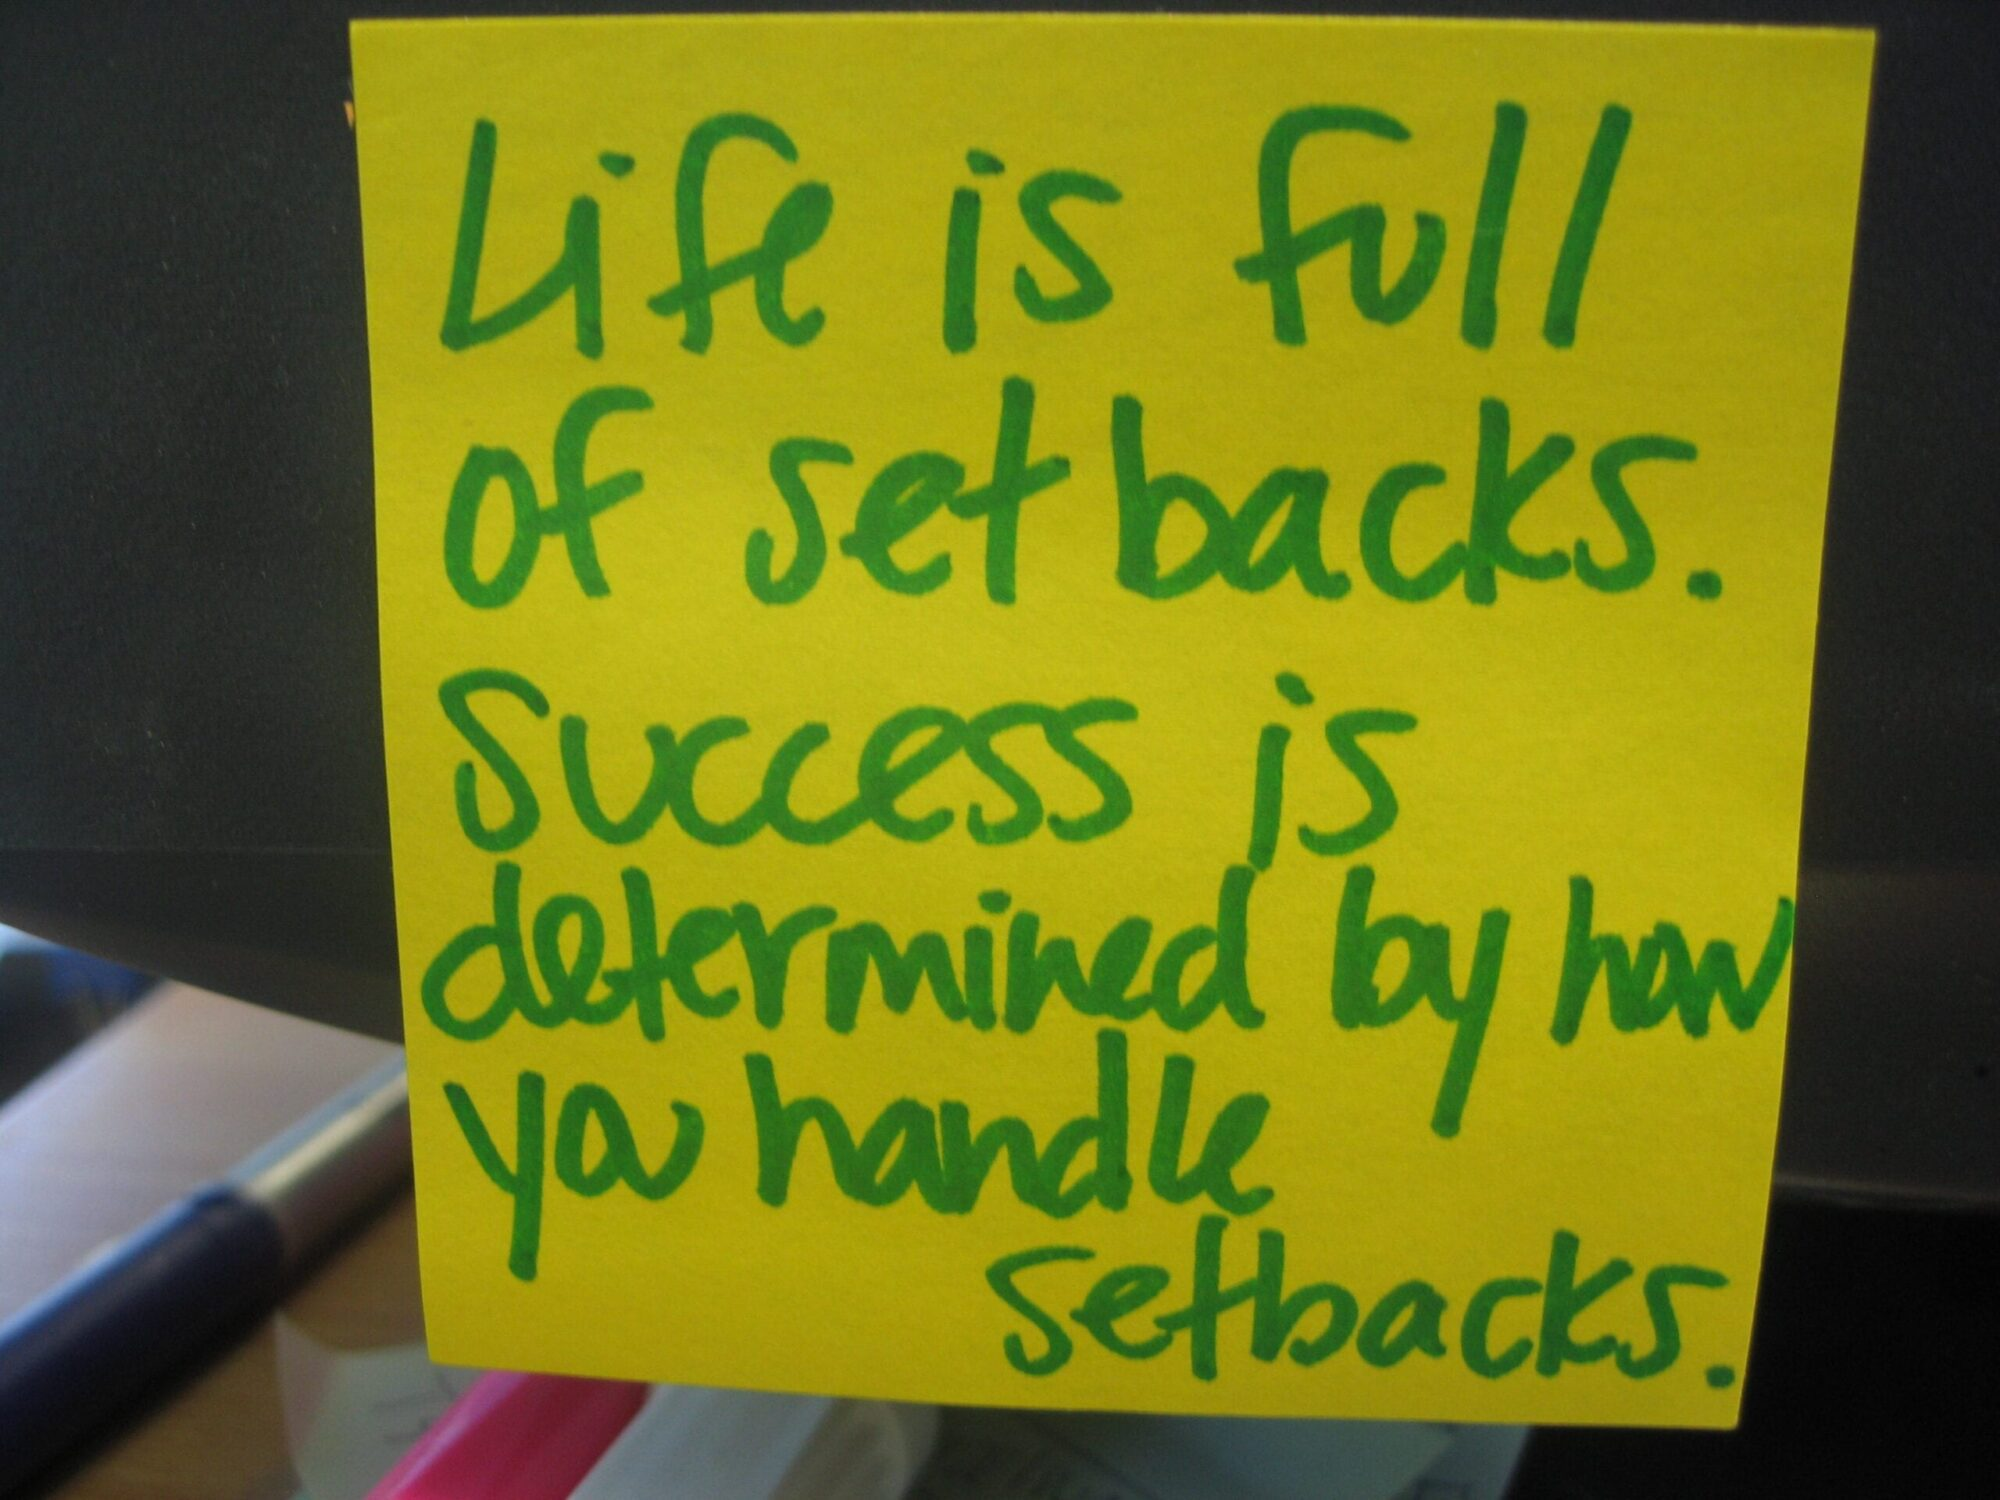 Success is how you handle the setbacks